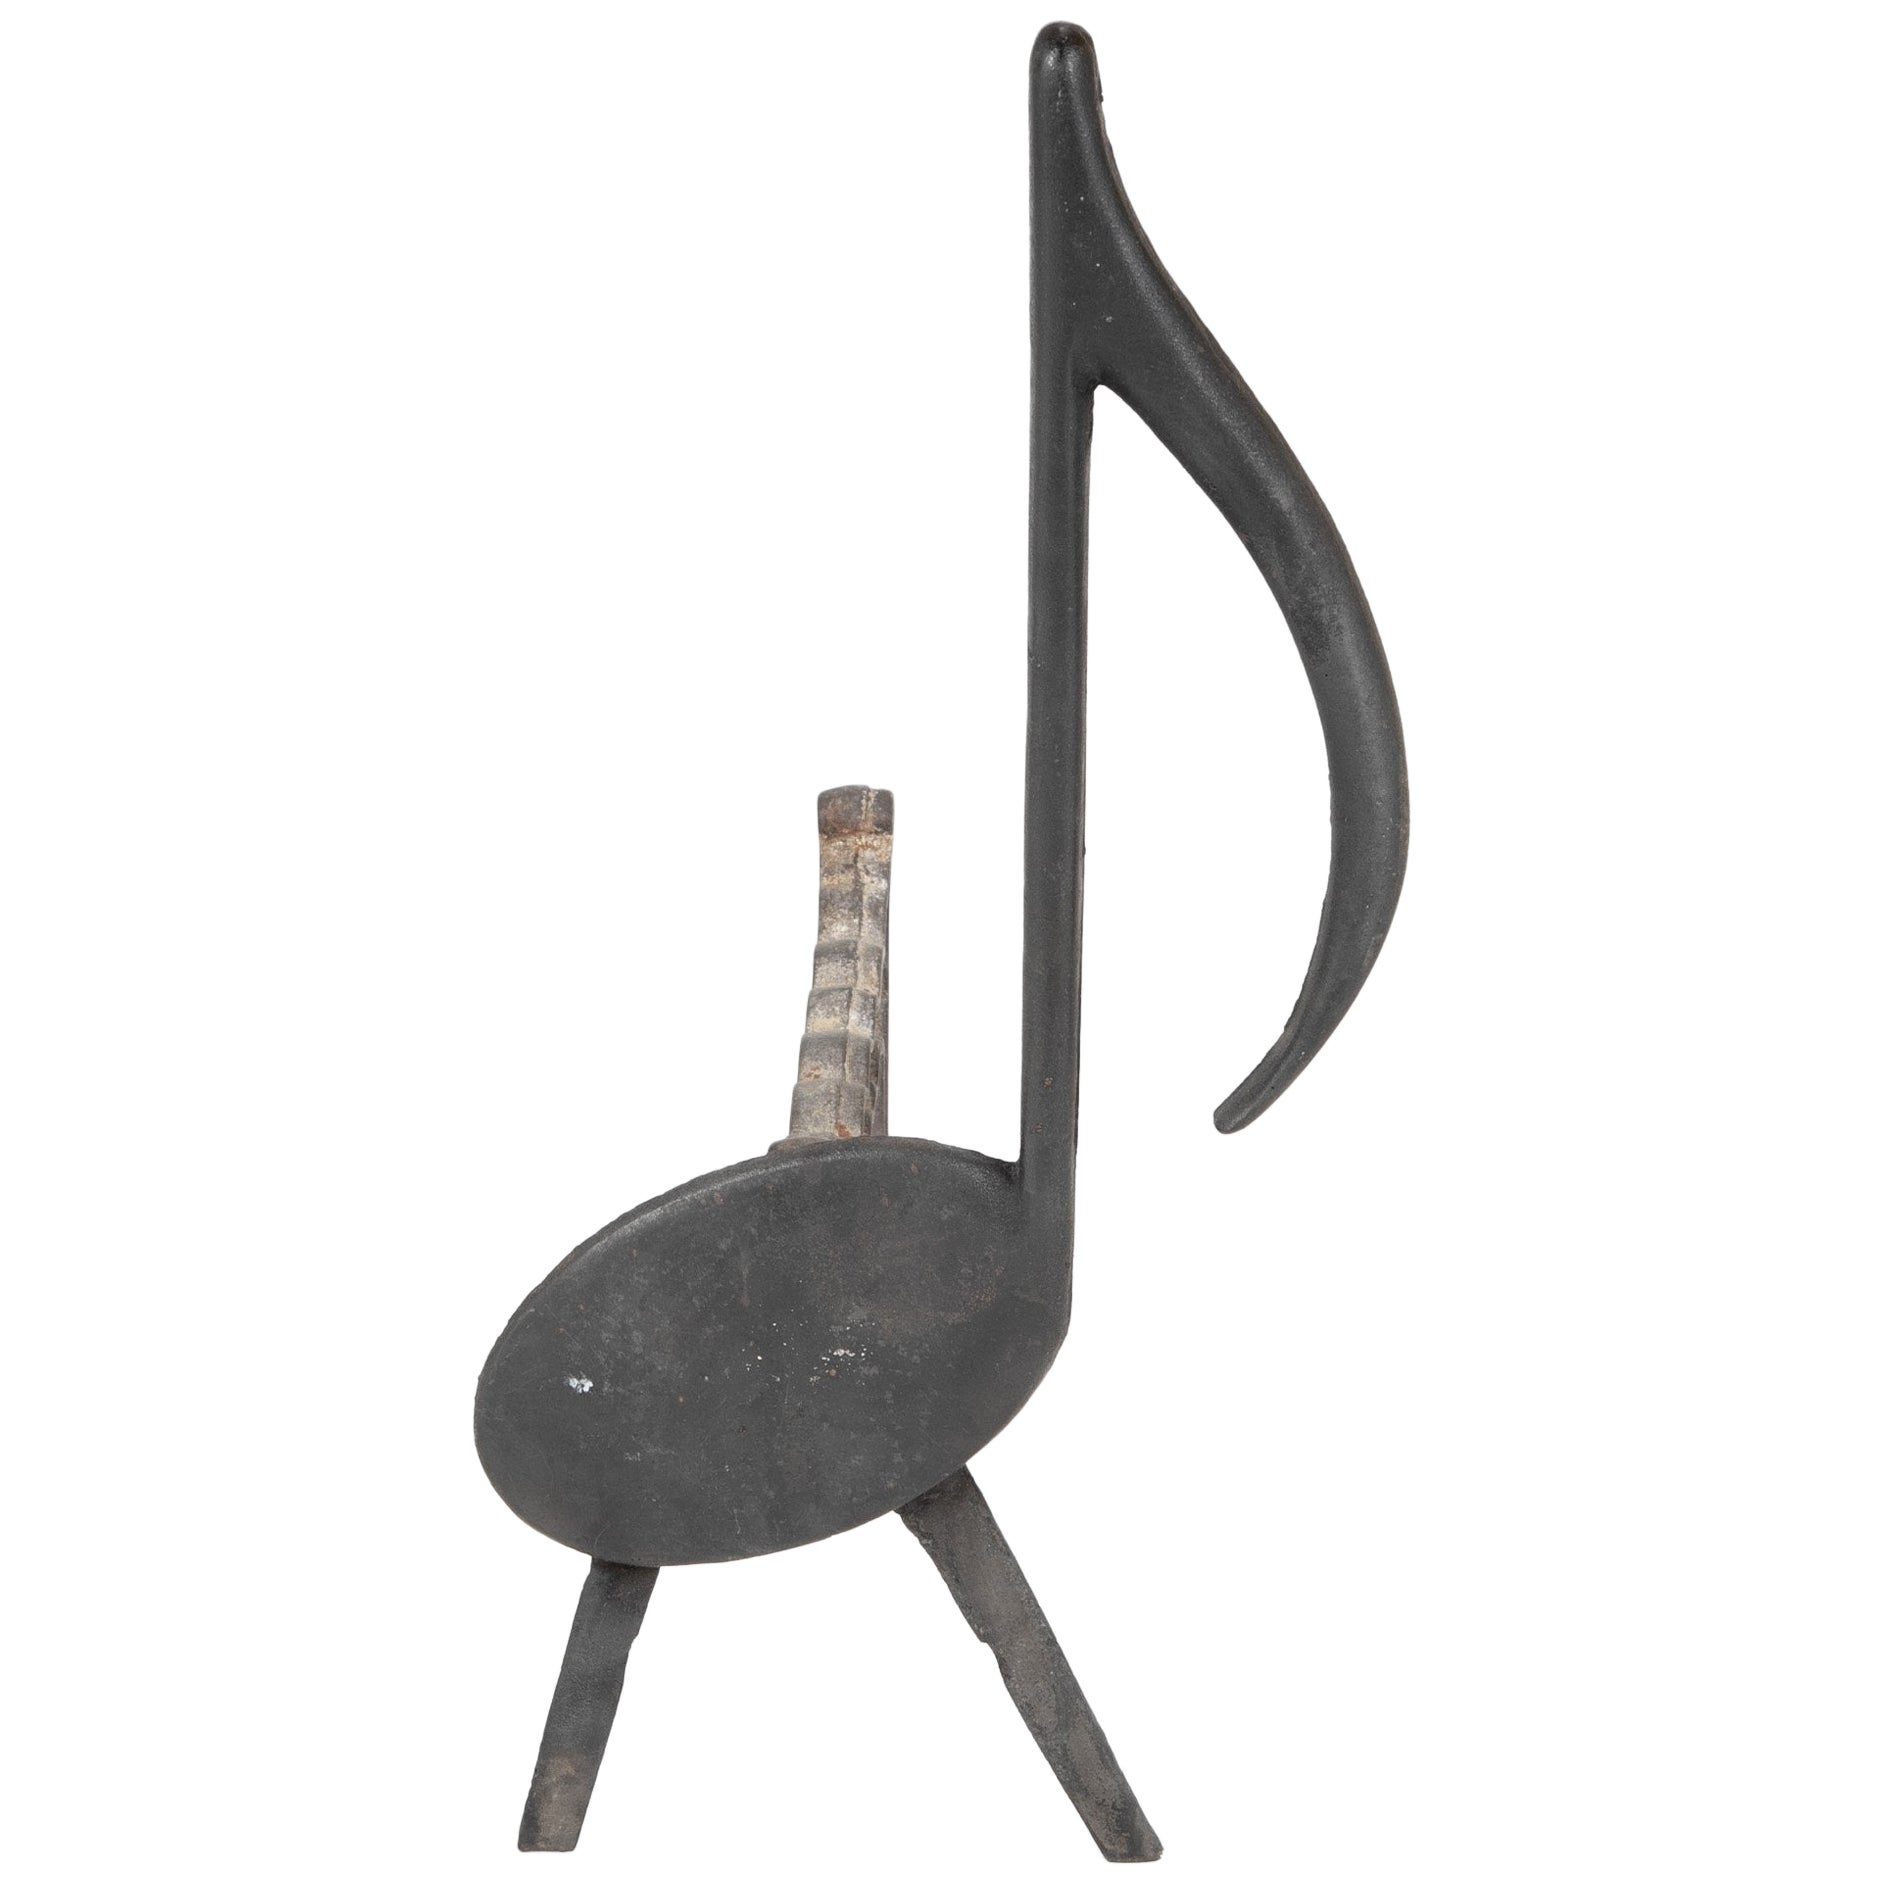 Musical Note Wrought Iron Andirons Stamped Nashville TN, 1920s